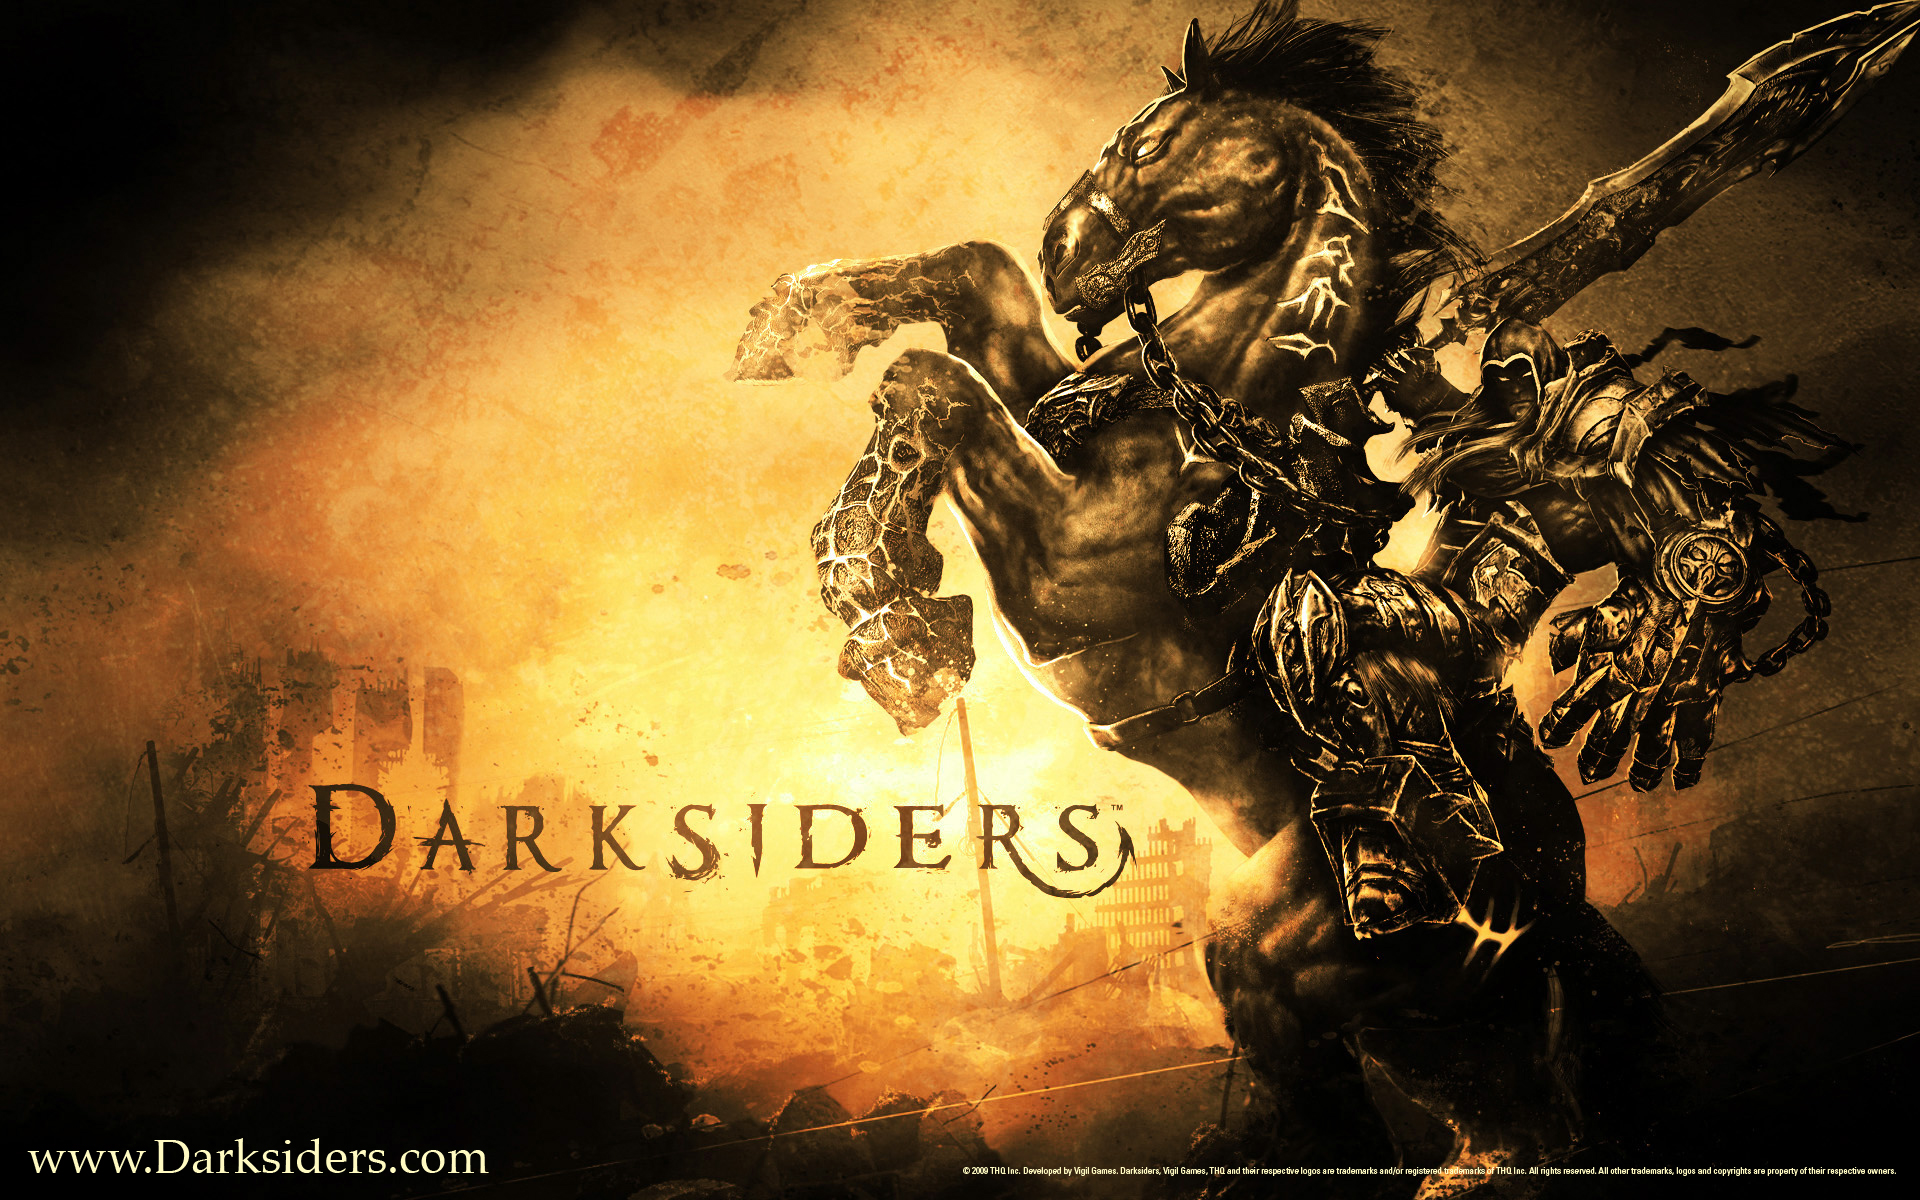 Darksiders Musings of an Idle Brain 1920x1200